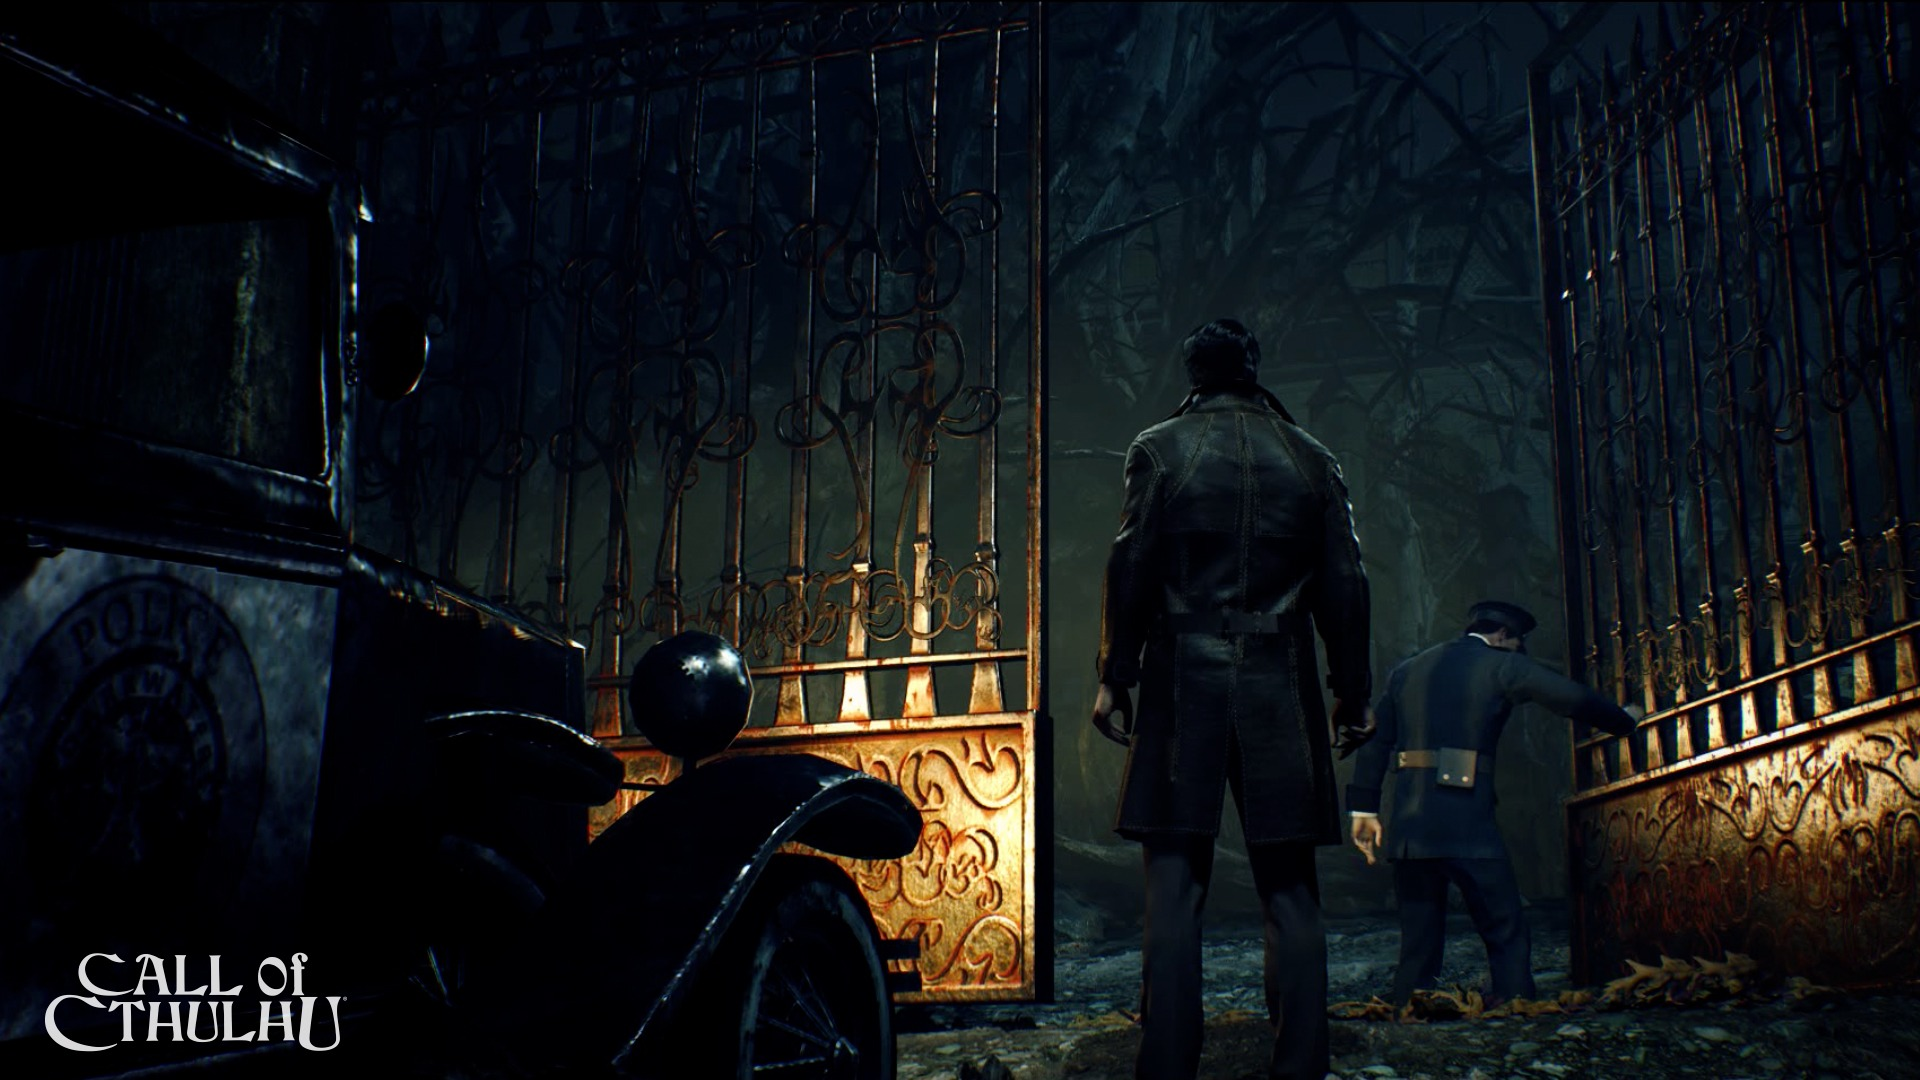 Call of Cthulhu: Official Video Game (PC, PS4, XONE)